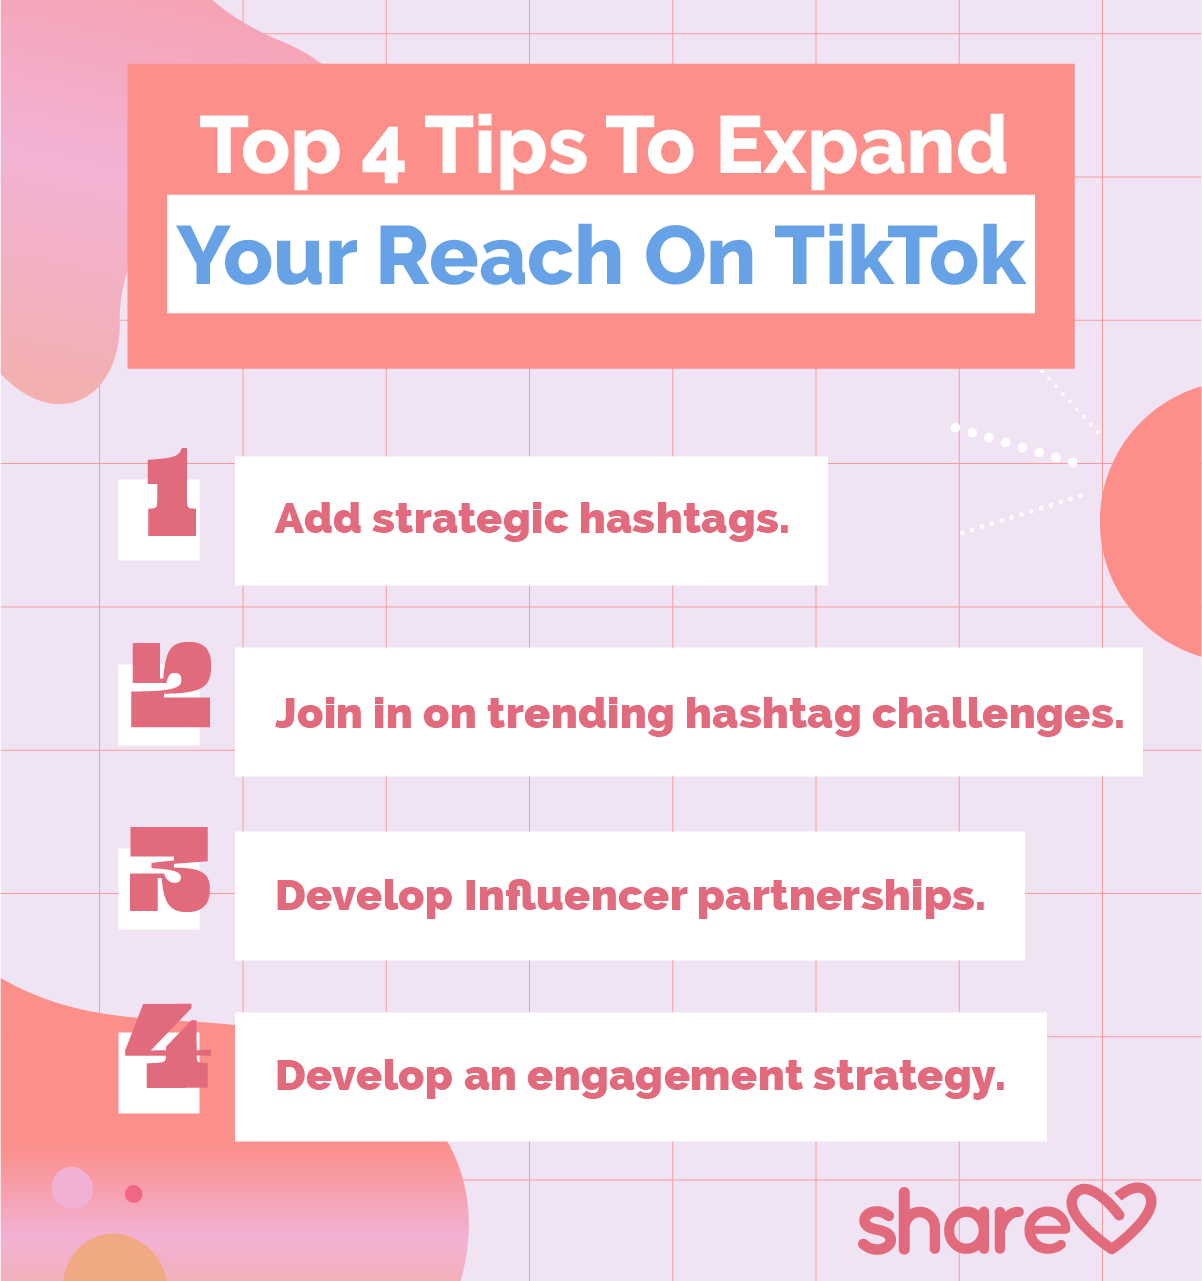 Top Tips to expand your reach on tiktok